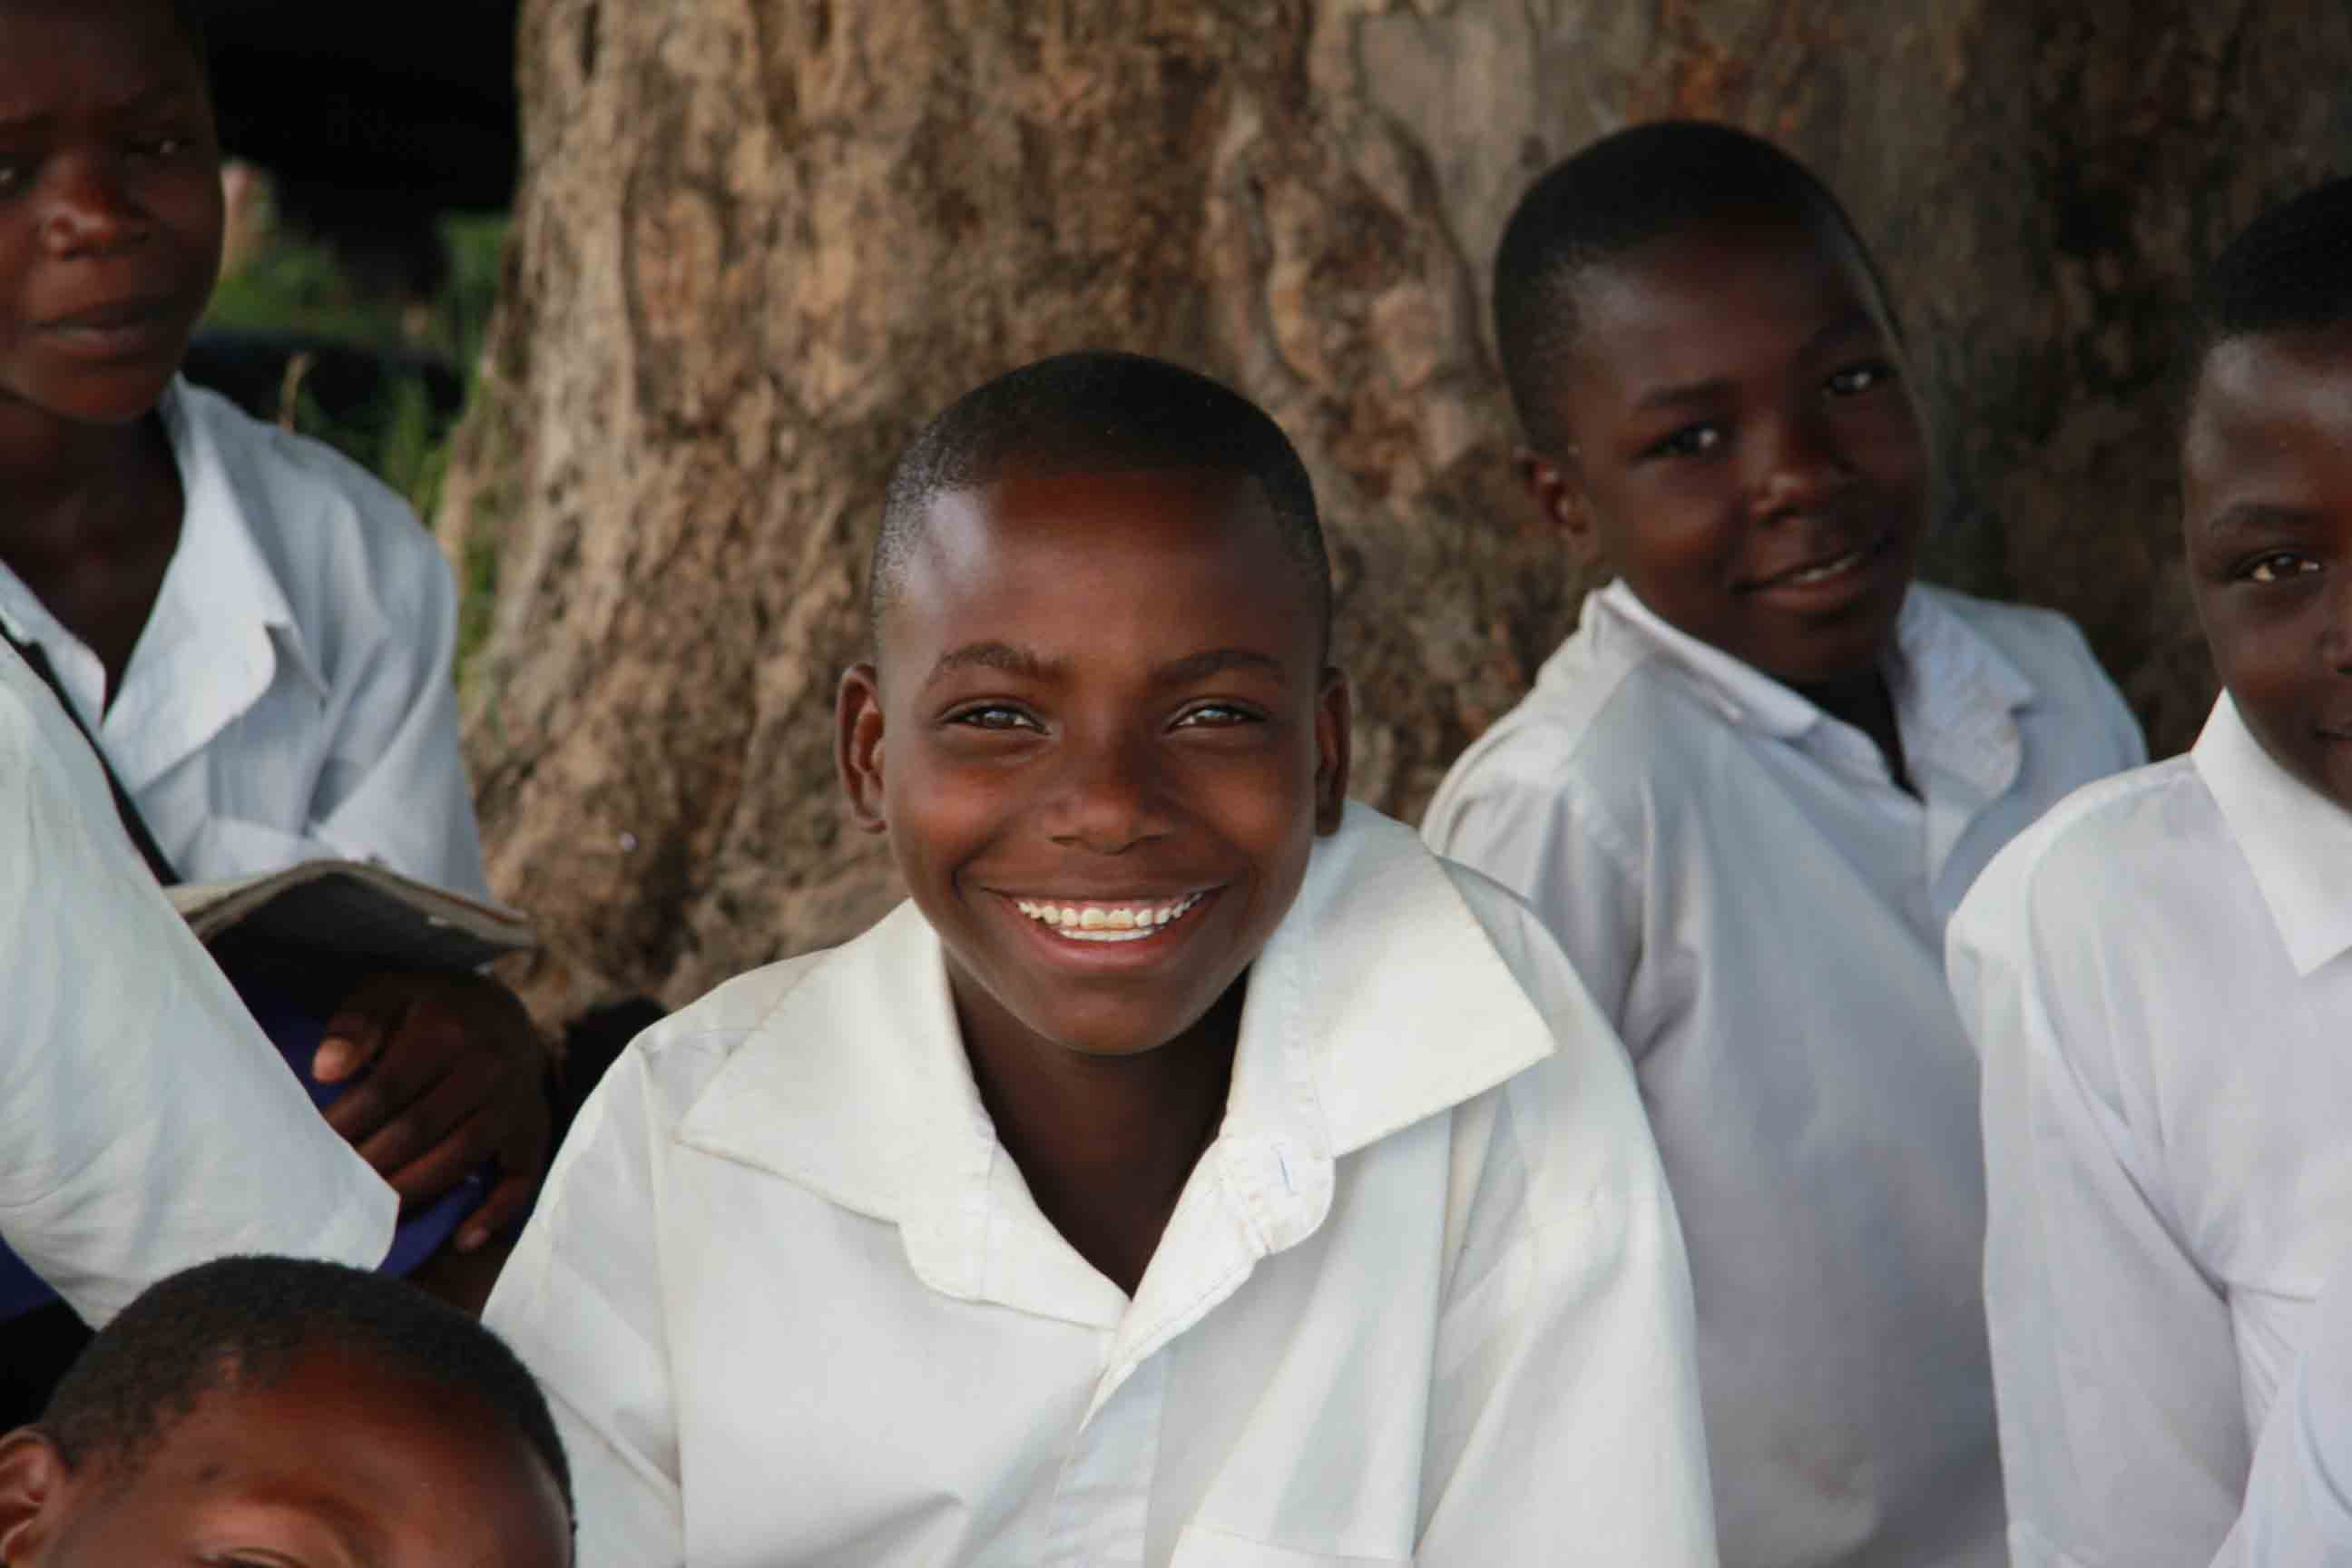 Photo Caption: Girls at Mwaniko Secondary School, Misungwi District, Tanzania.